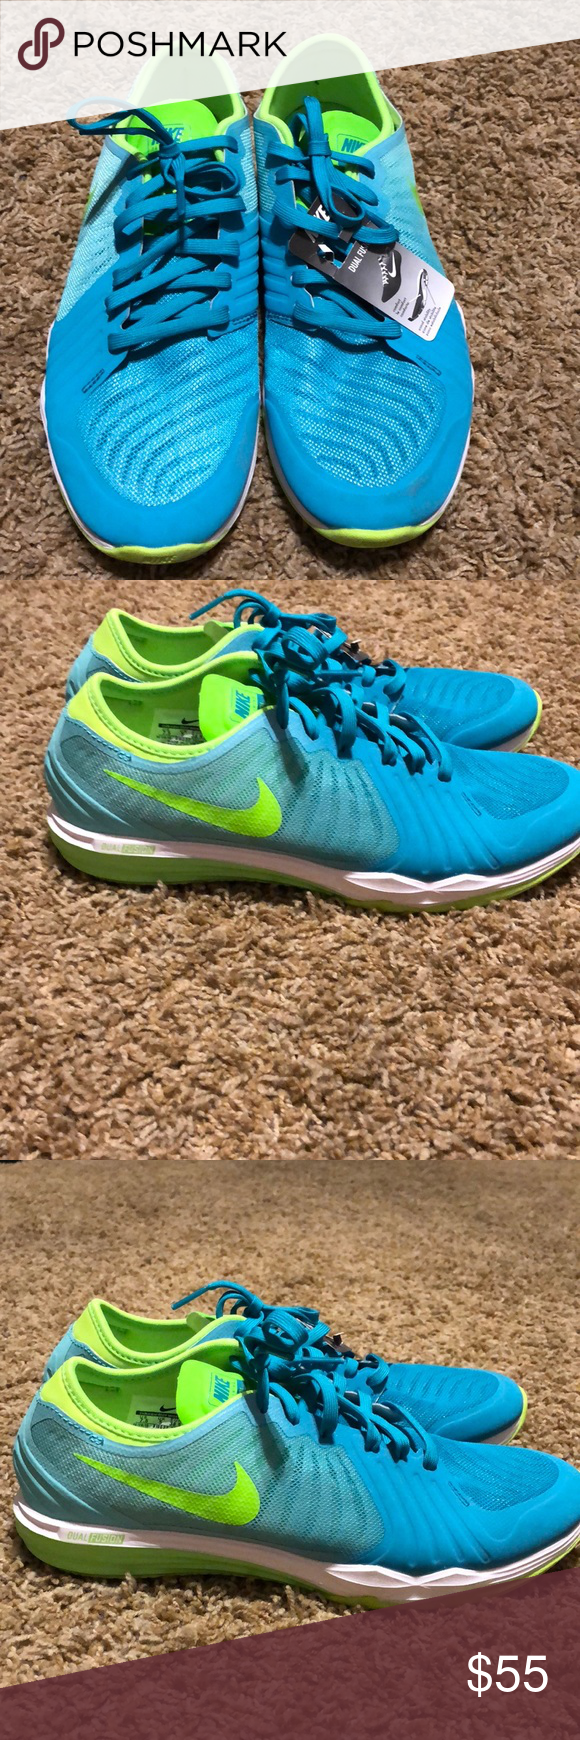 on sale de07c a21ed Nike Dual Fusion DF TR4 BRAND NEW Brand new teal and green training shoes.  Great colors size 7.5 Nike Shoes Athletic Shoes